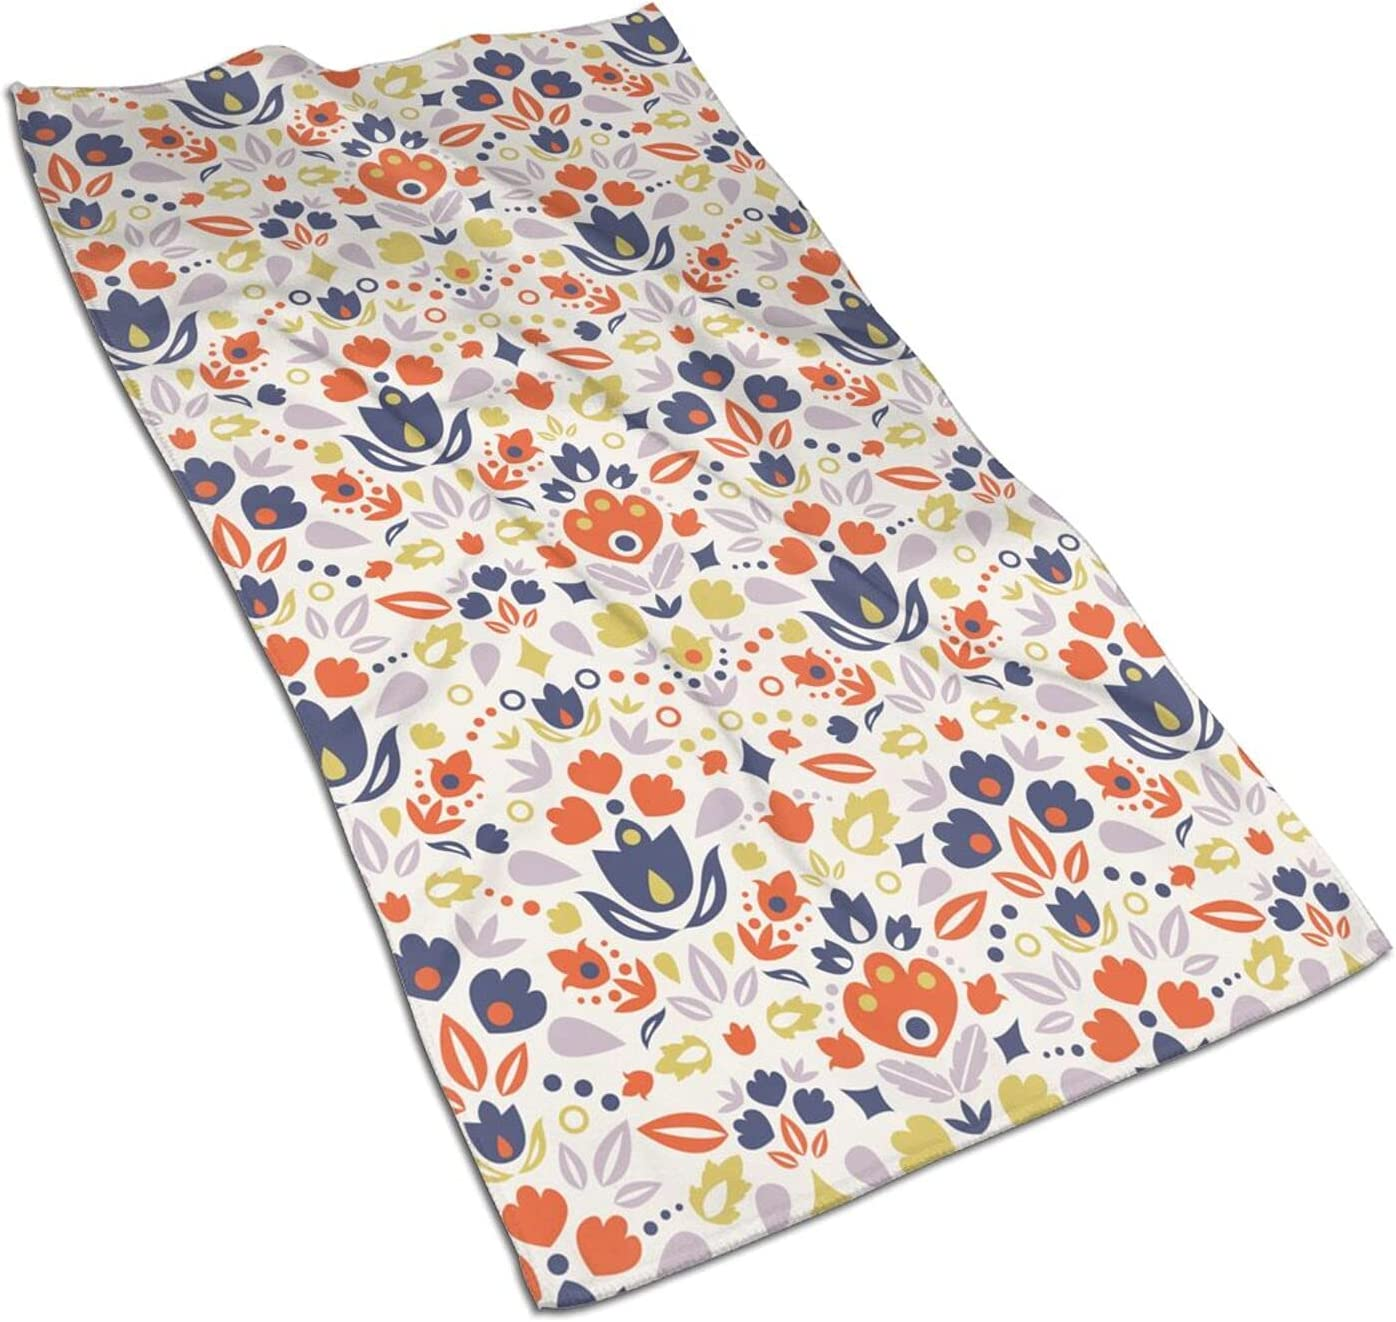 Colorful Popular standard Floral New Orleans Mall Bath Towels Soft Fingertip Stylish Ultra